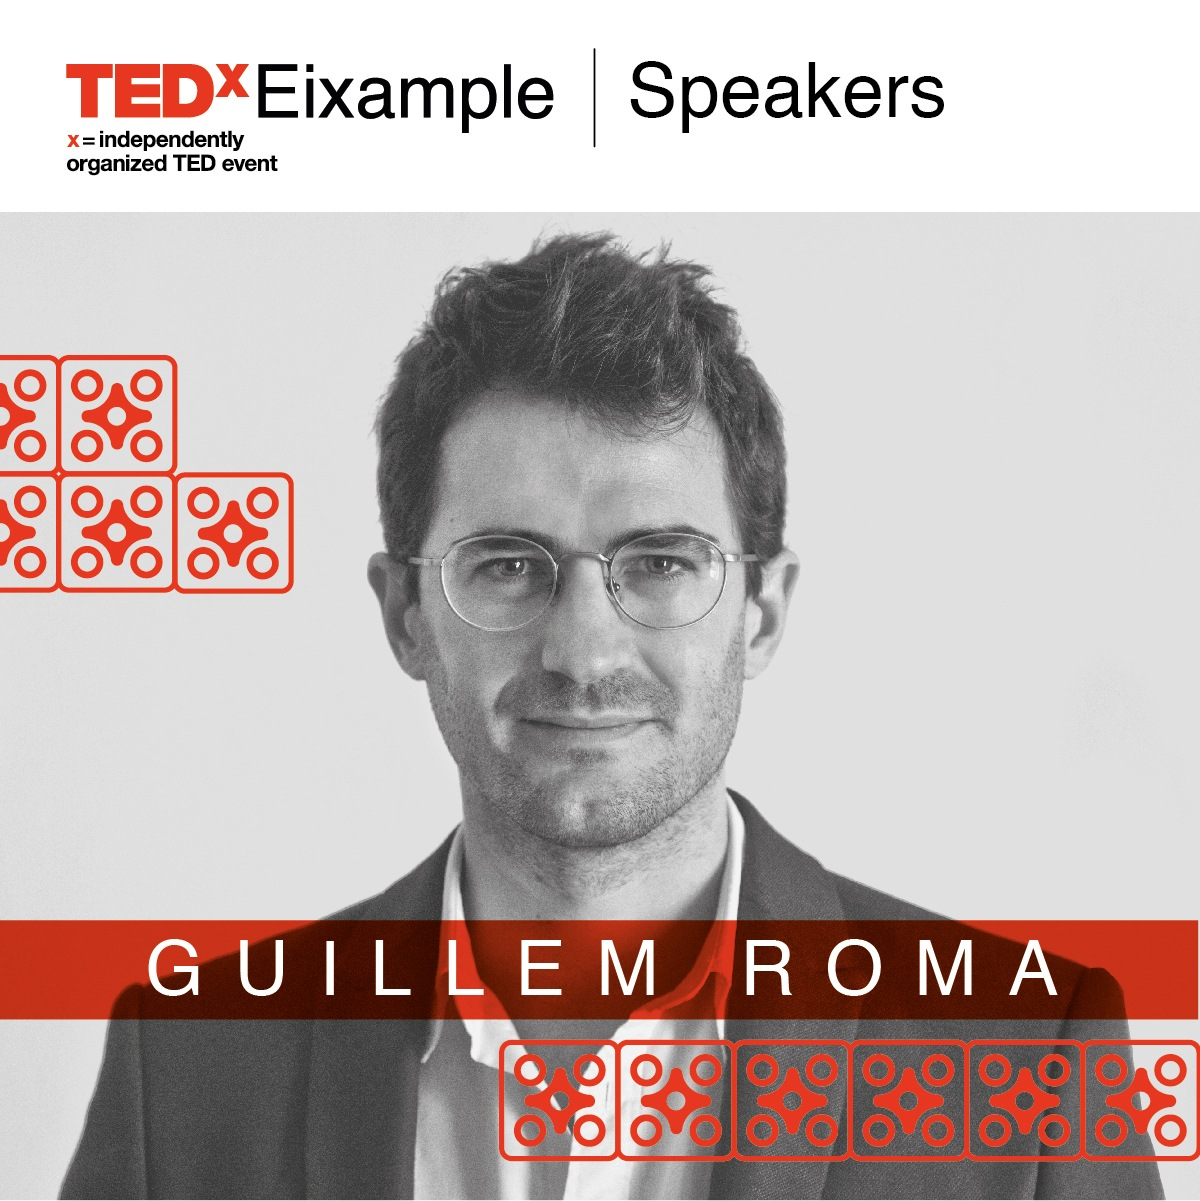 guillem roma tedxeixample